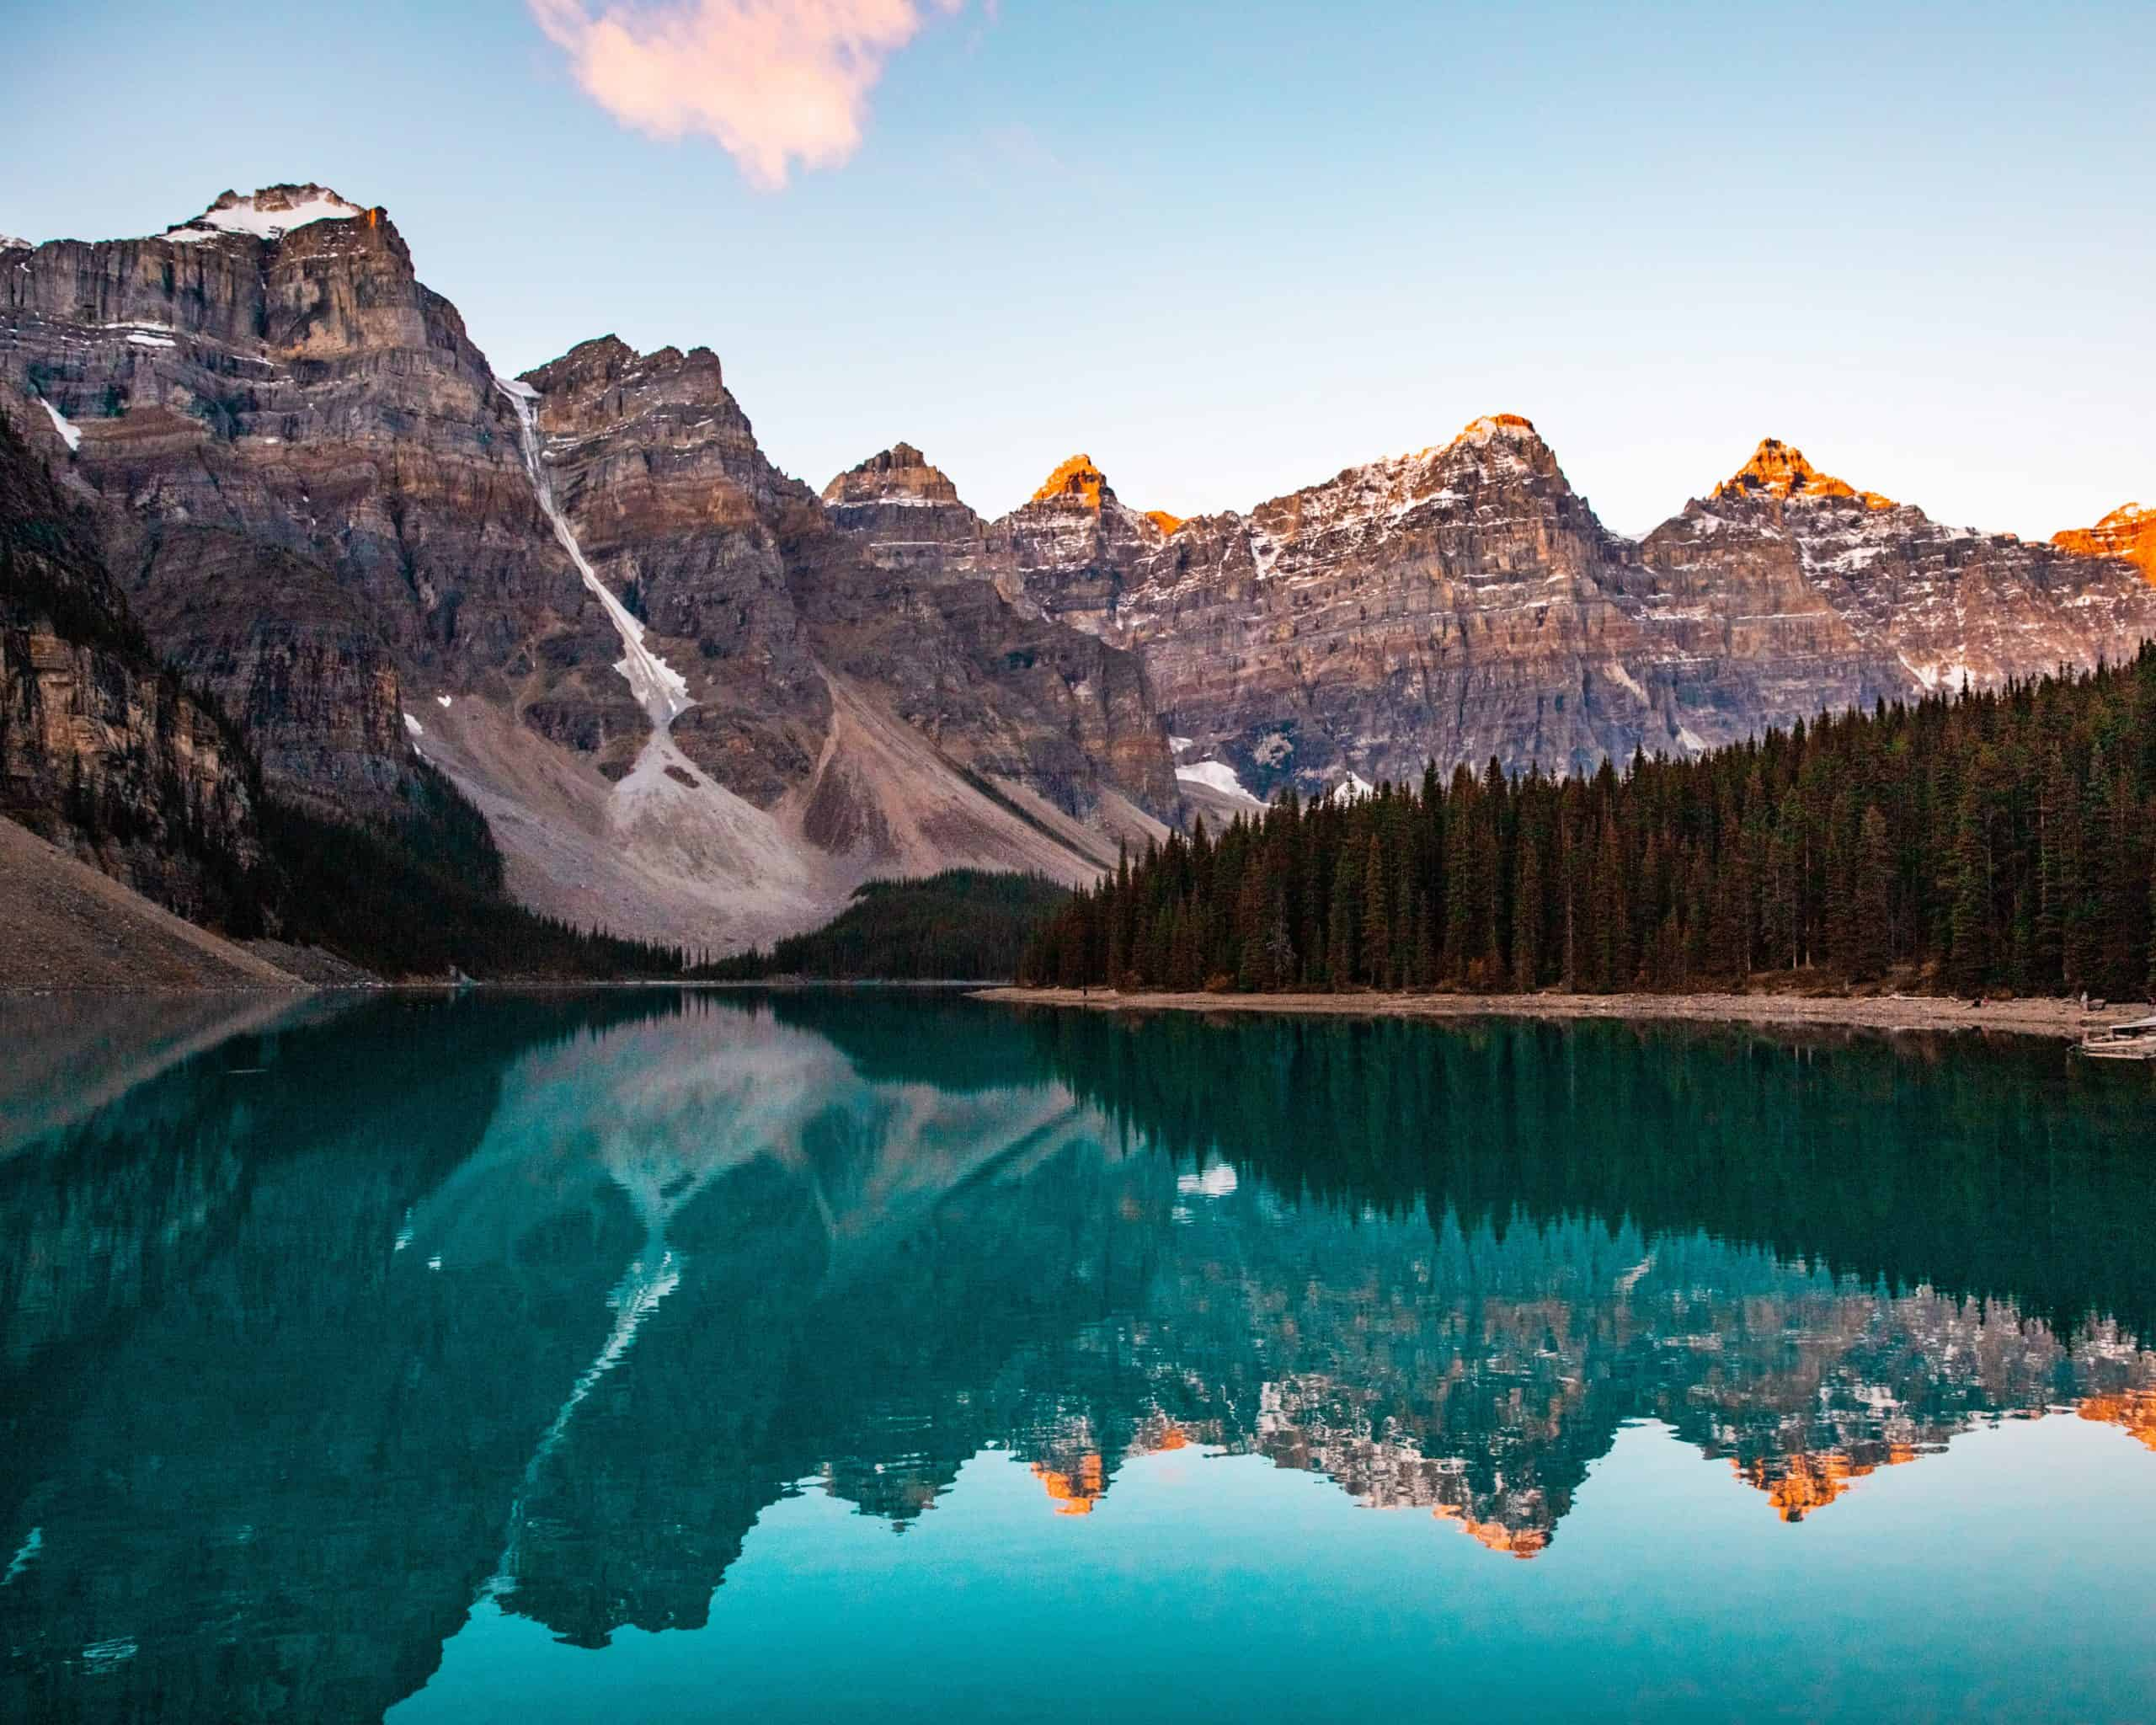 Pink Mountain Peaks at Moraine Lake at Sunrise